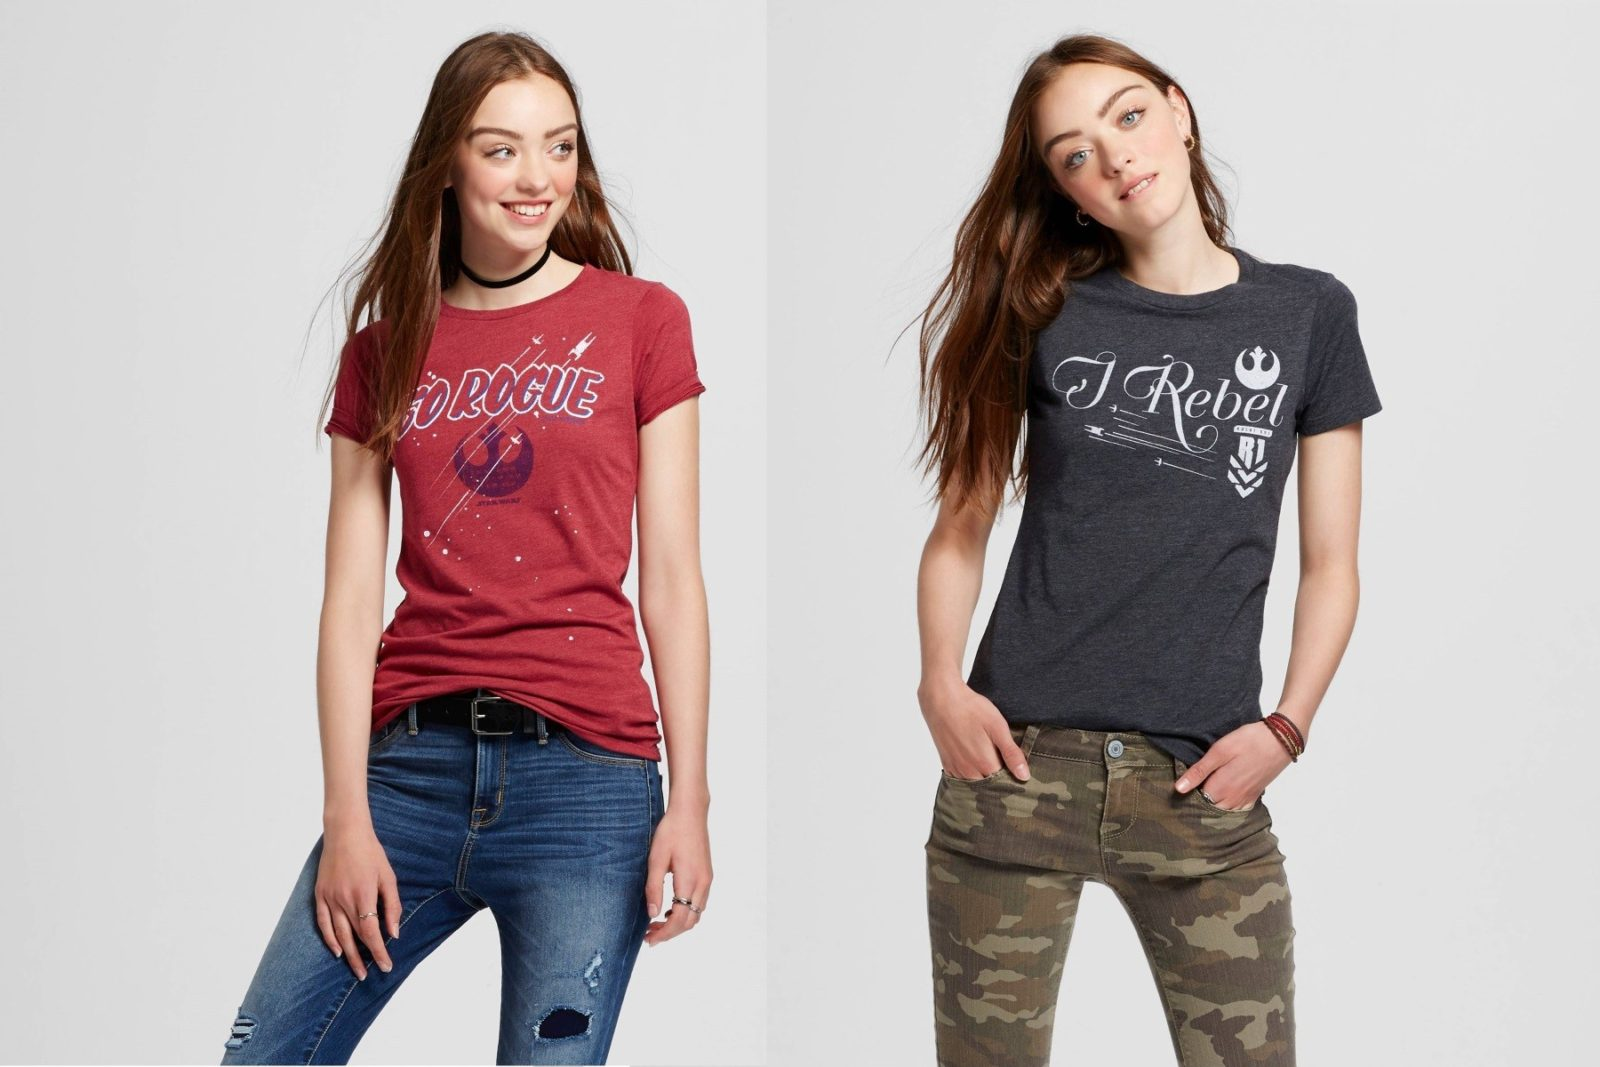 Force 4 Fashion Rogue One tees at Target